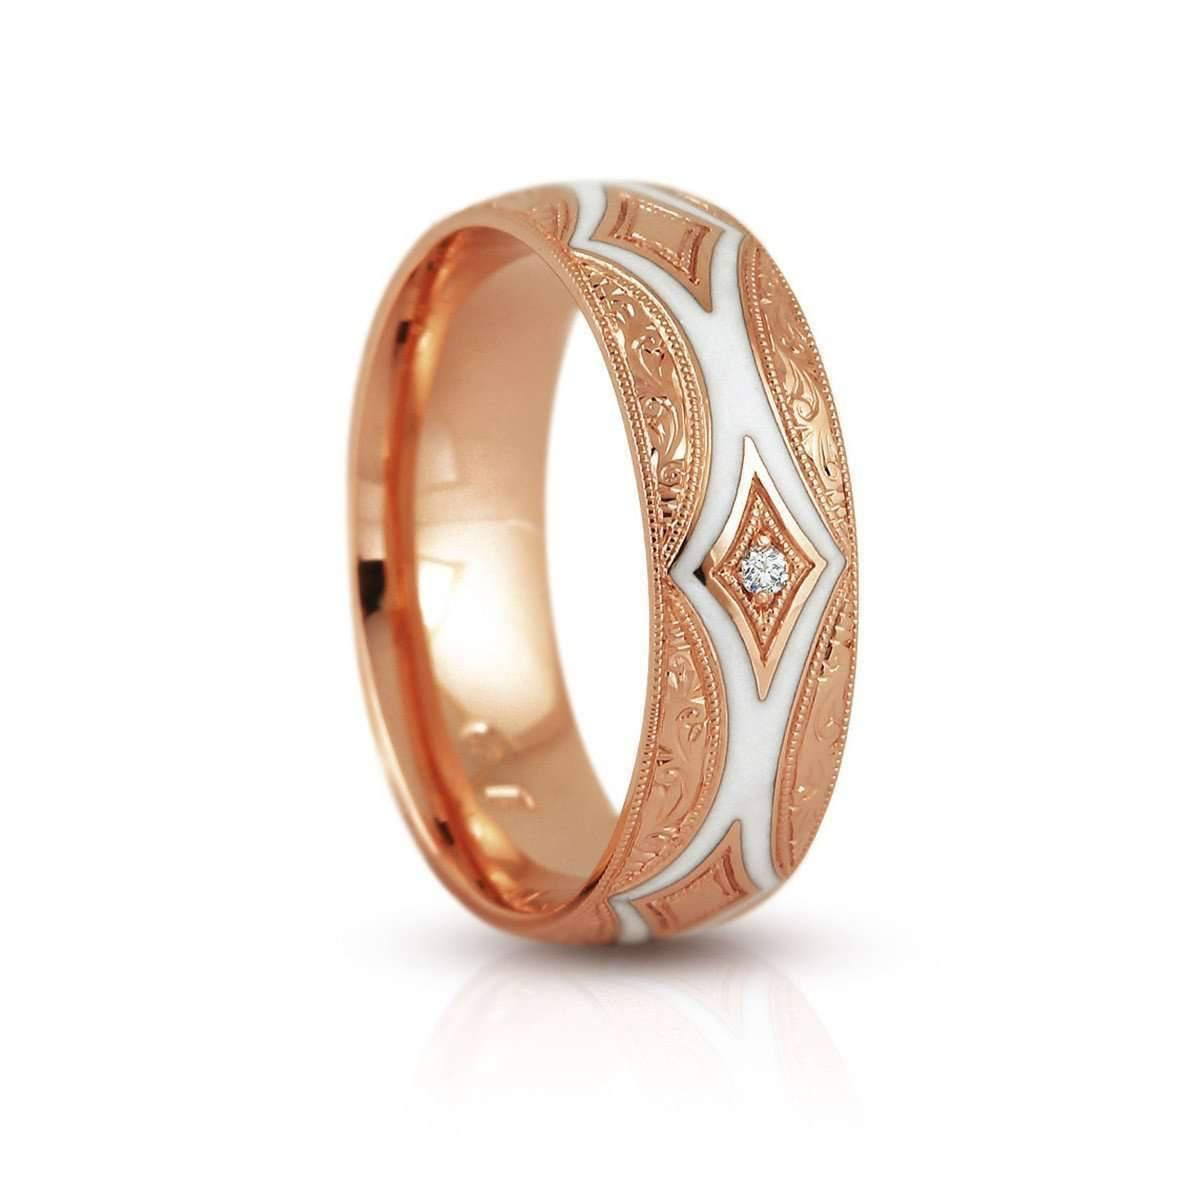 Lyst - Affianced Jewellery Leonardo Ring e6384f2eea